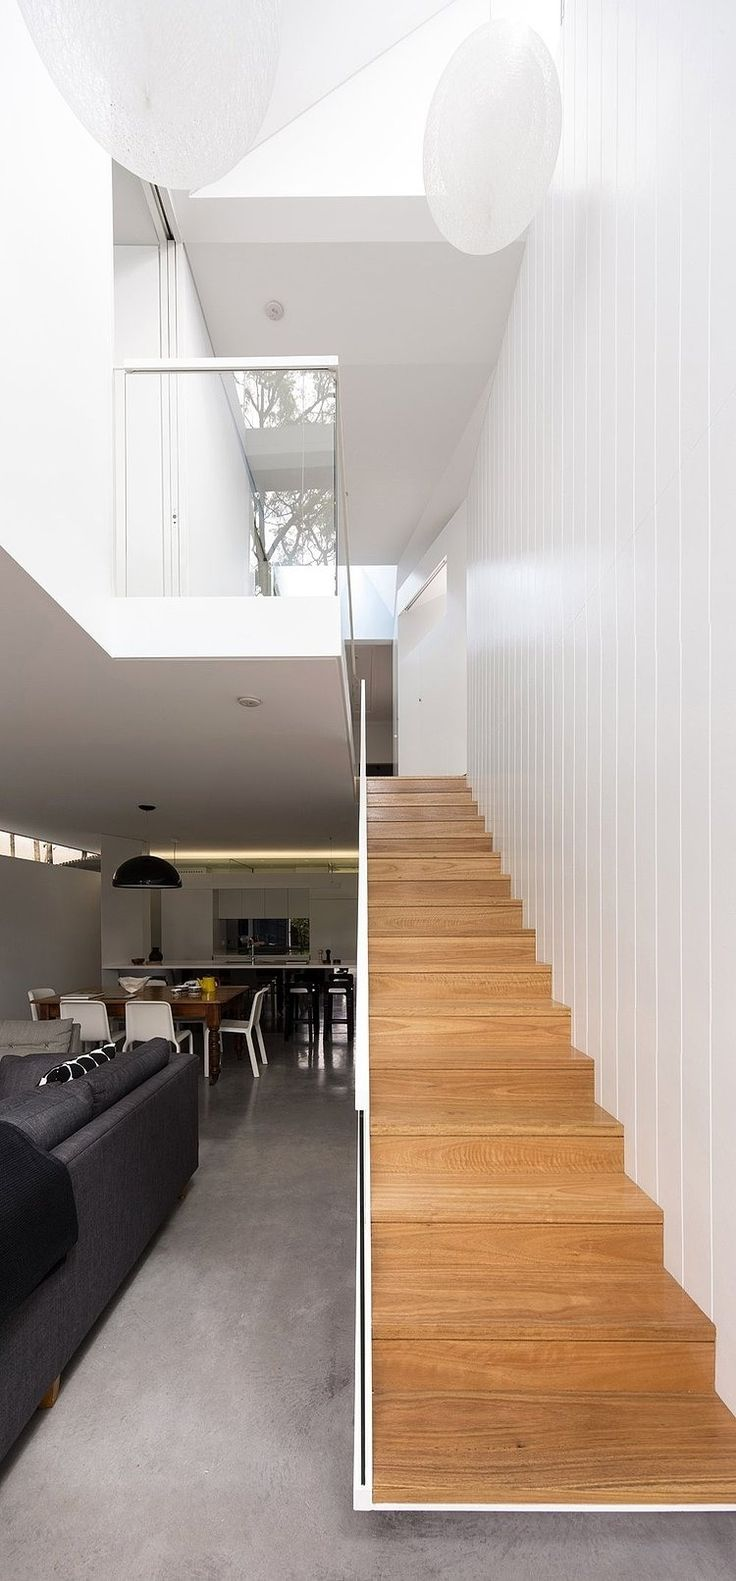 382 best container house images on Pinterest | Shipping containers ...